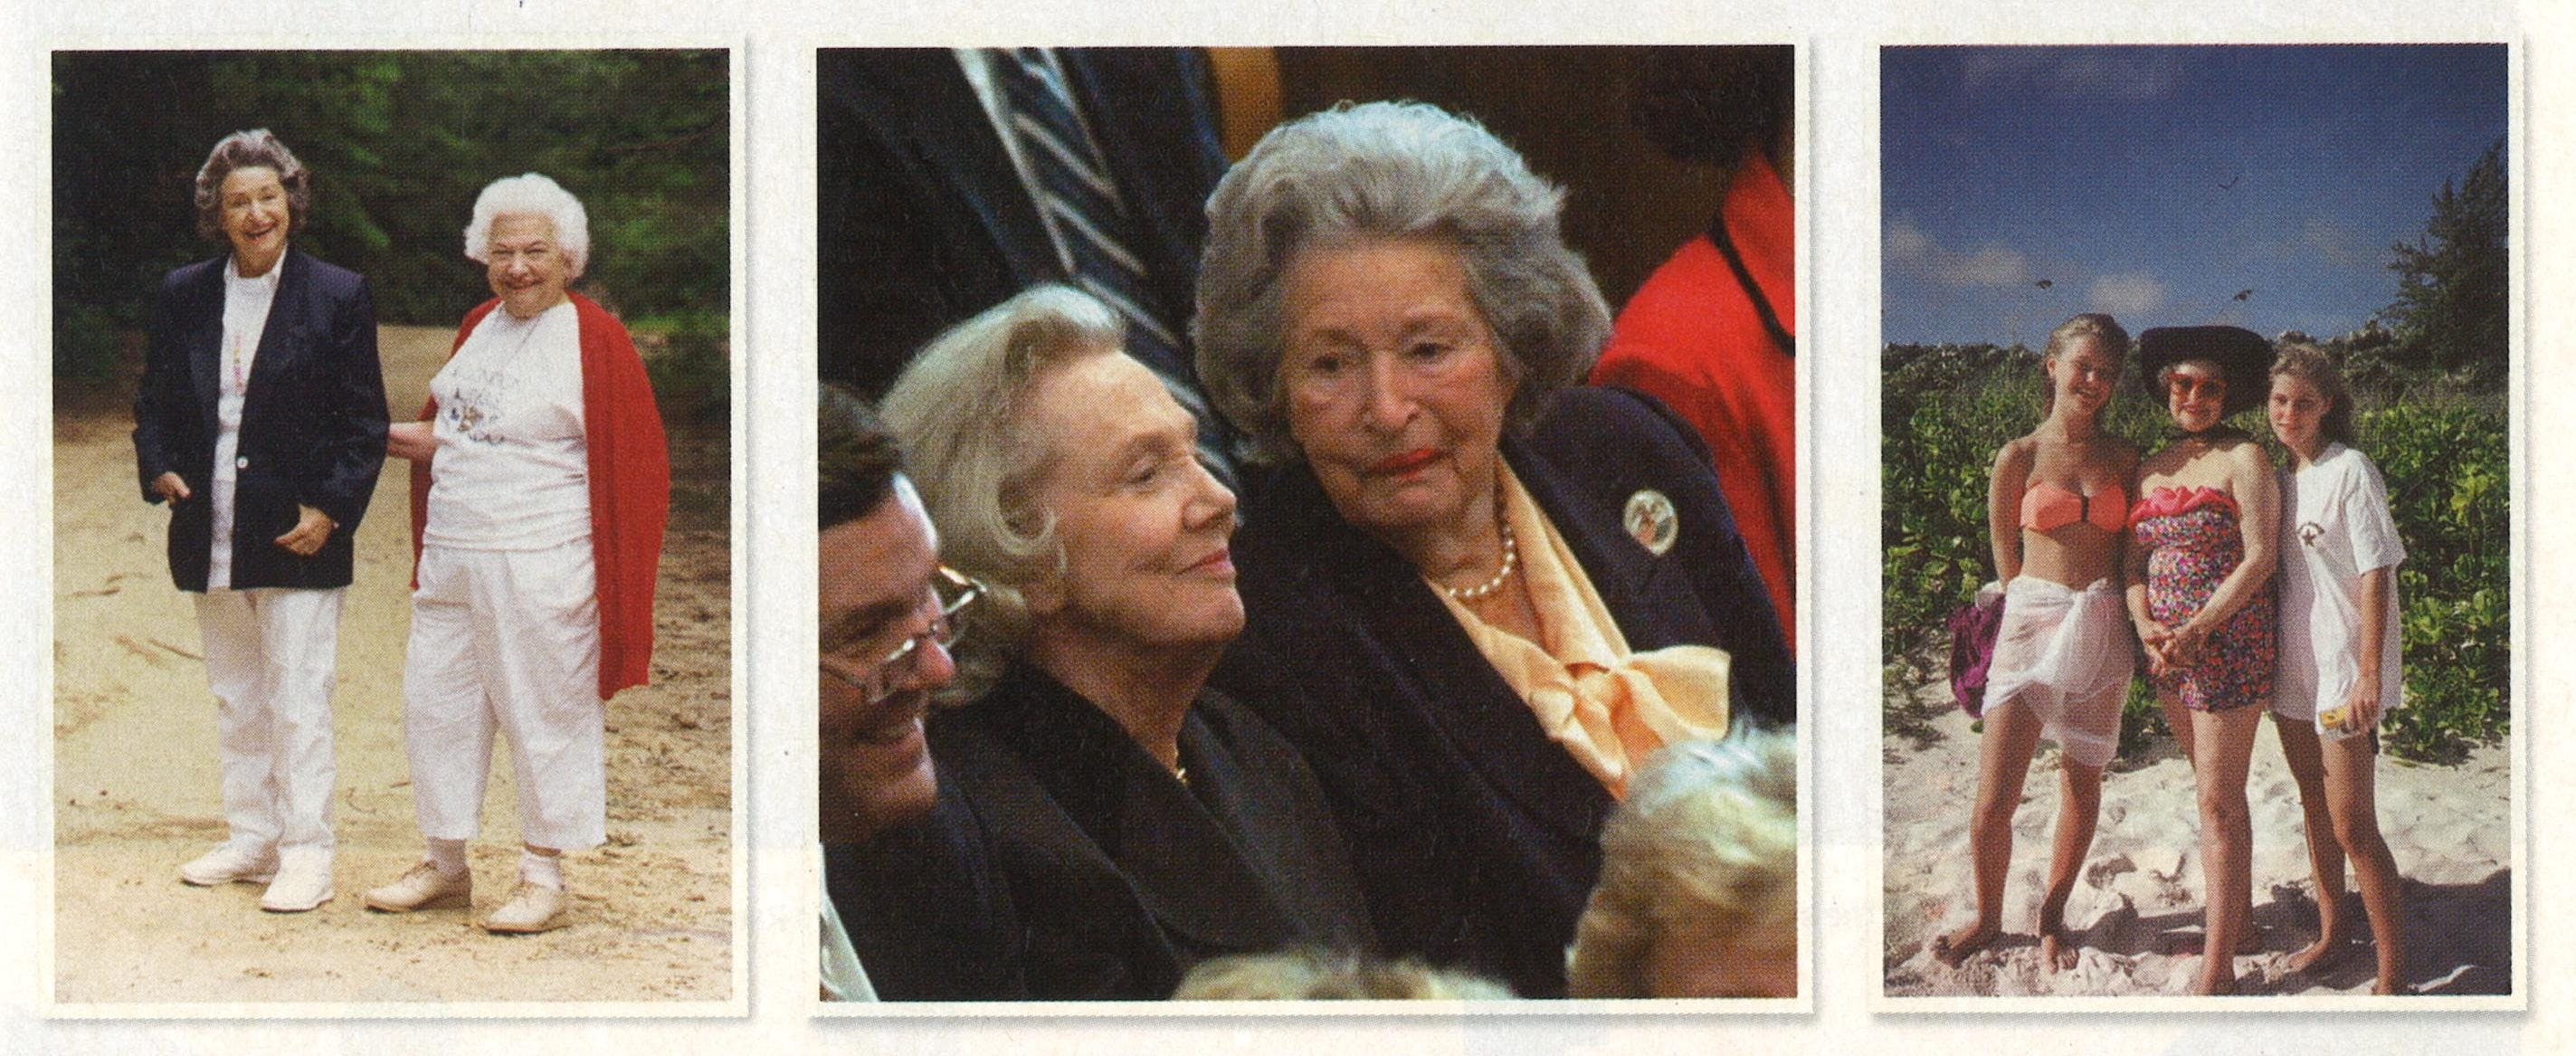 From left: On Martha's Vineyard with Liz Carpenter, her former press secretary. At a memorial service for George E. Christian, Lyndon's former press secretary, with Nellie Connally, the wife of late governor John Connally. In the Virgin Islands with granddaughters Rebekah (left) and Claudia Nugent.